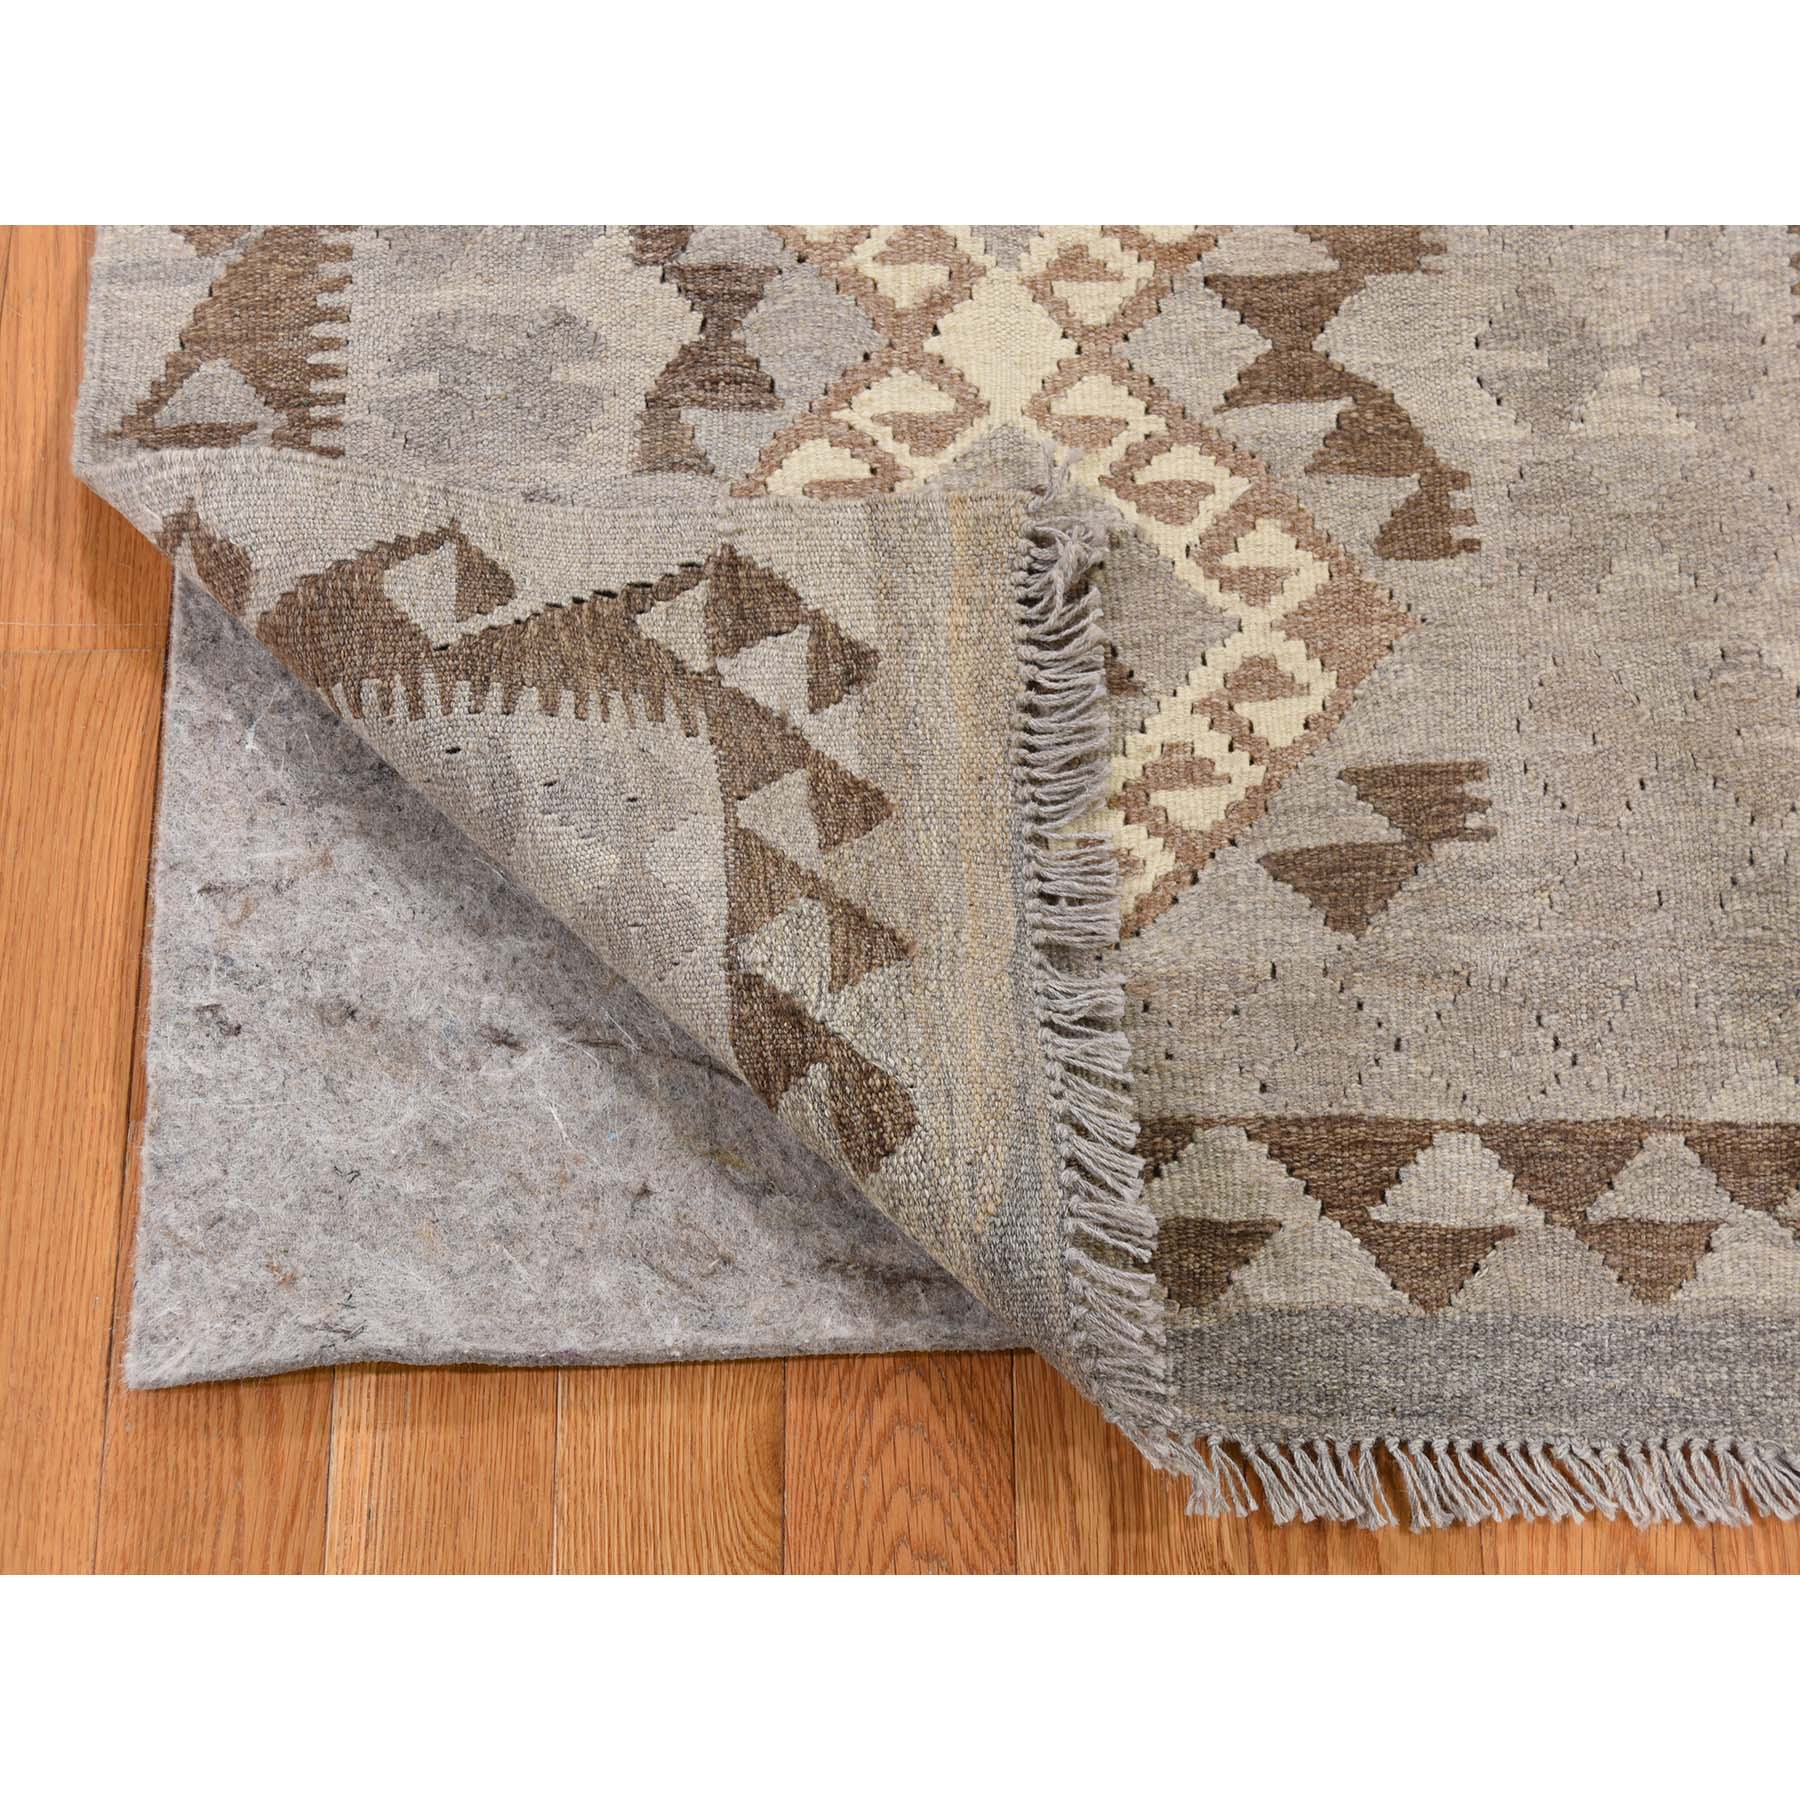 2-8 x4- Afghan Kilim Reversible Undyed Natural Wool Hand Woven Oriental Rug